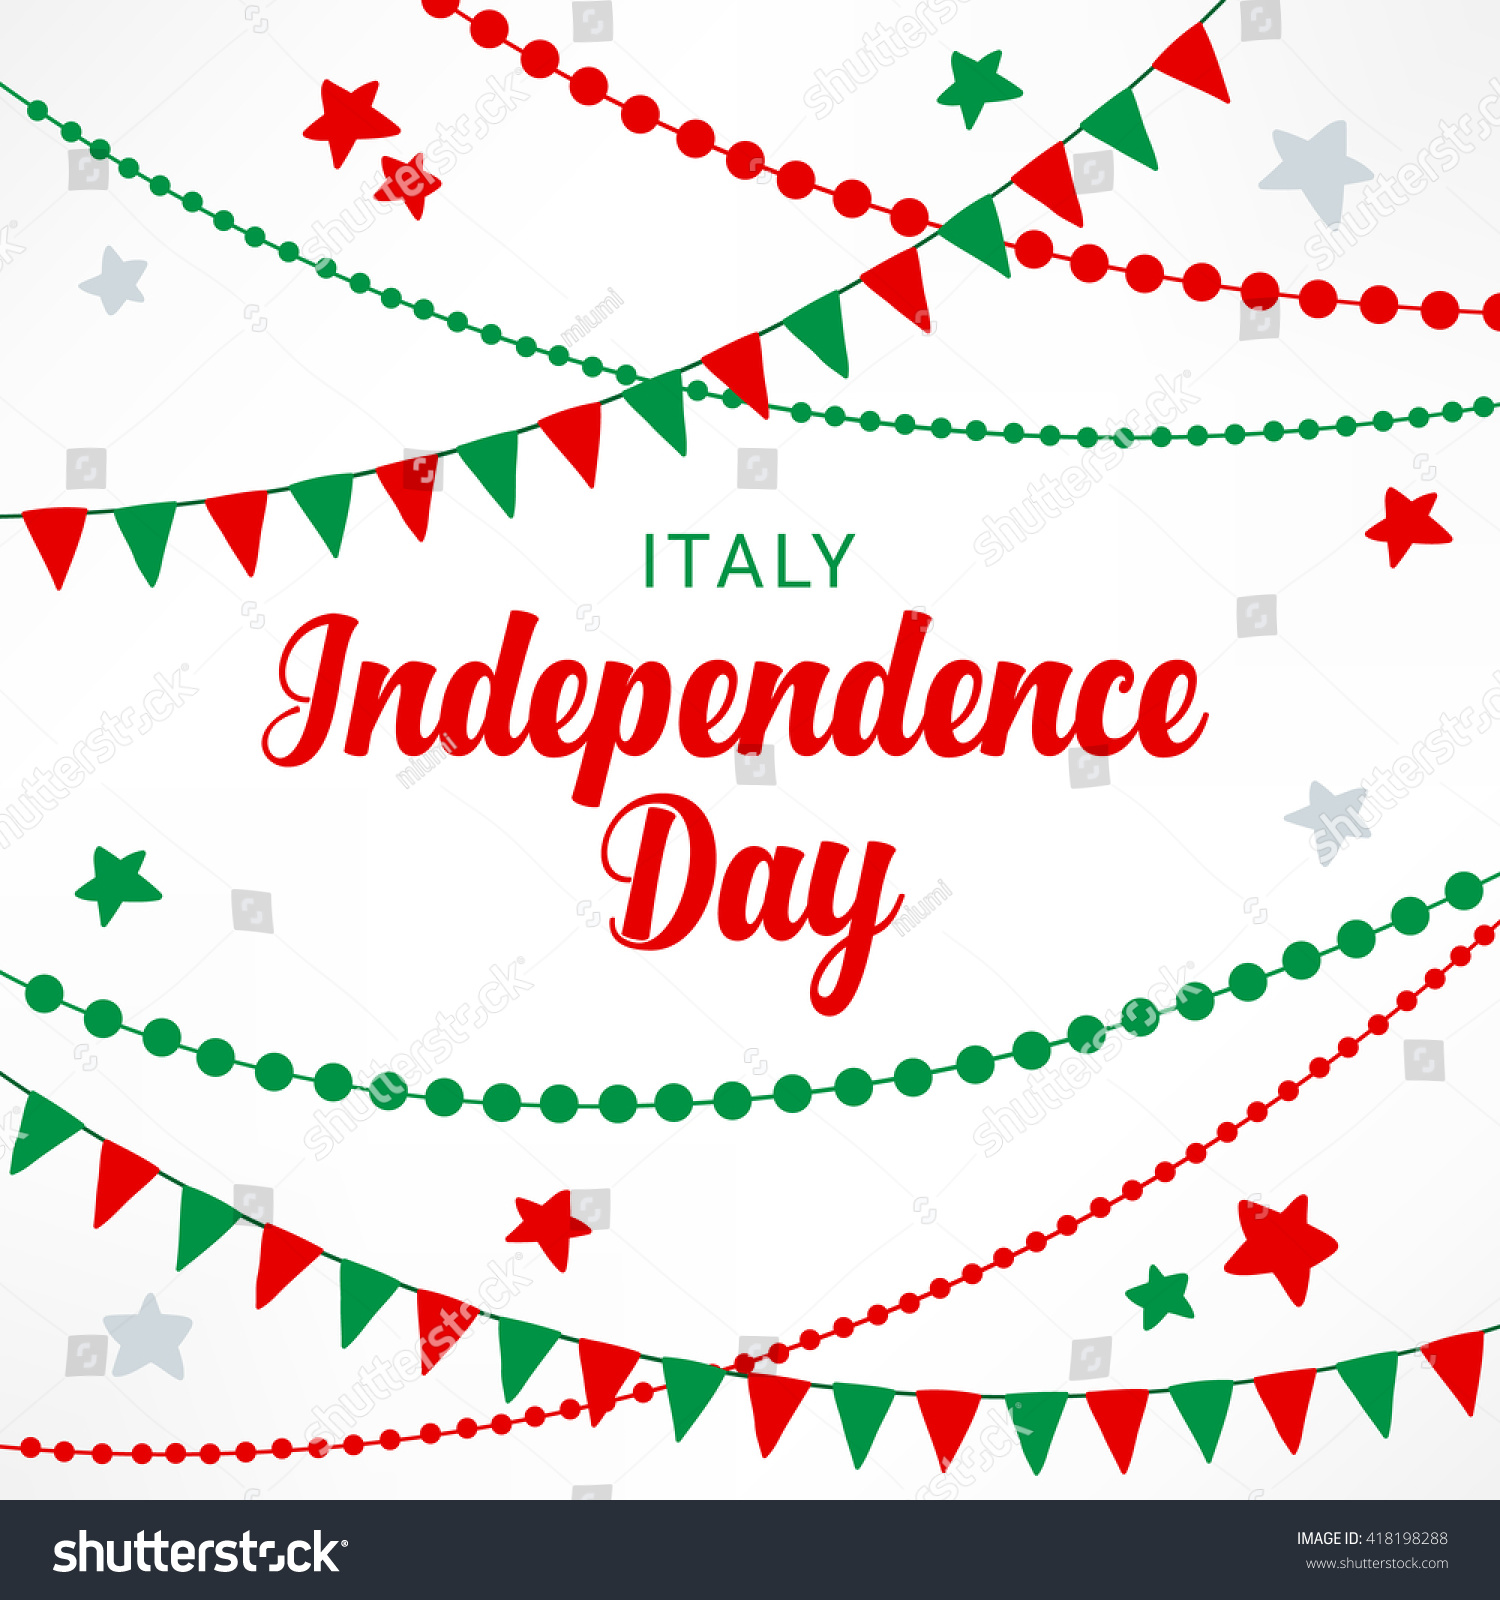 Italy Independence Day Greeting Card Flags Stock Vector (Royalty ...